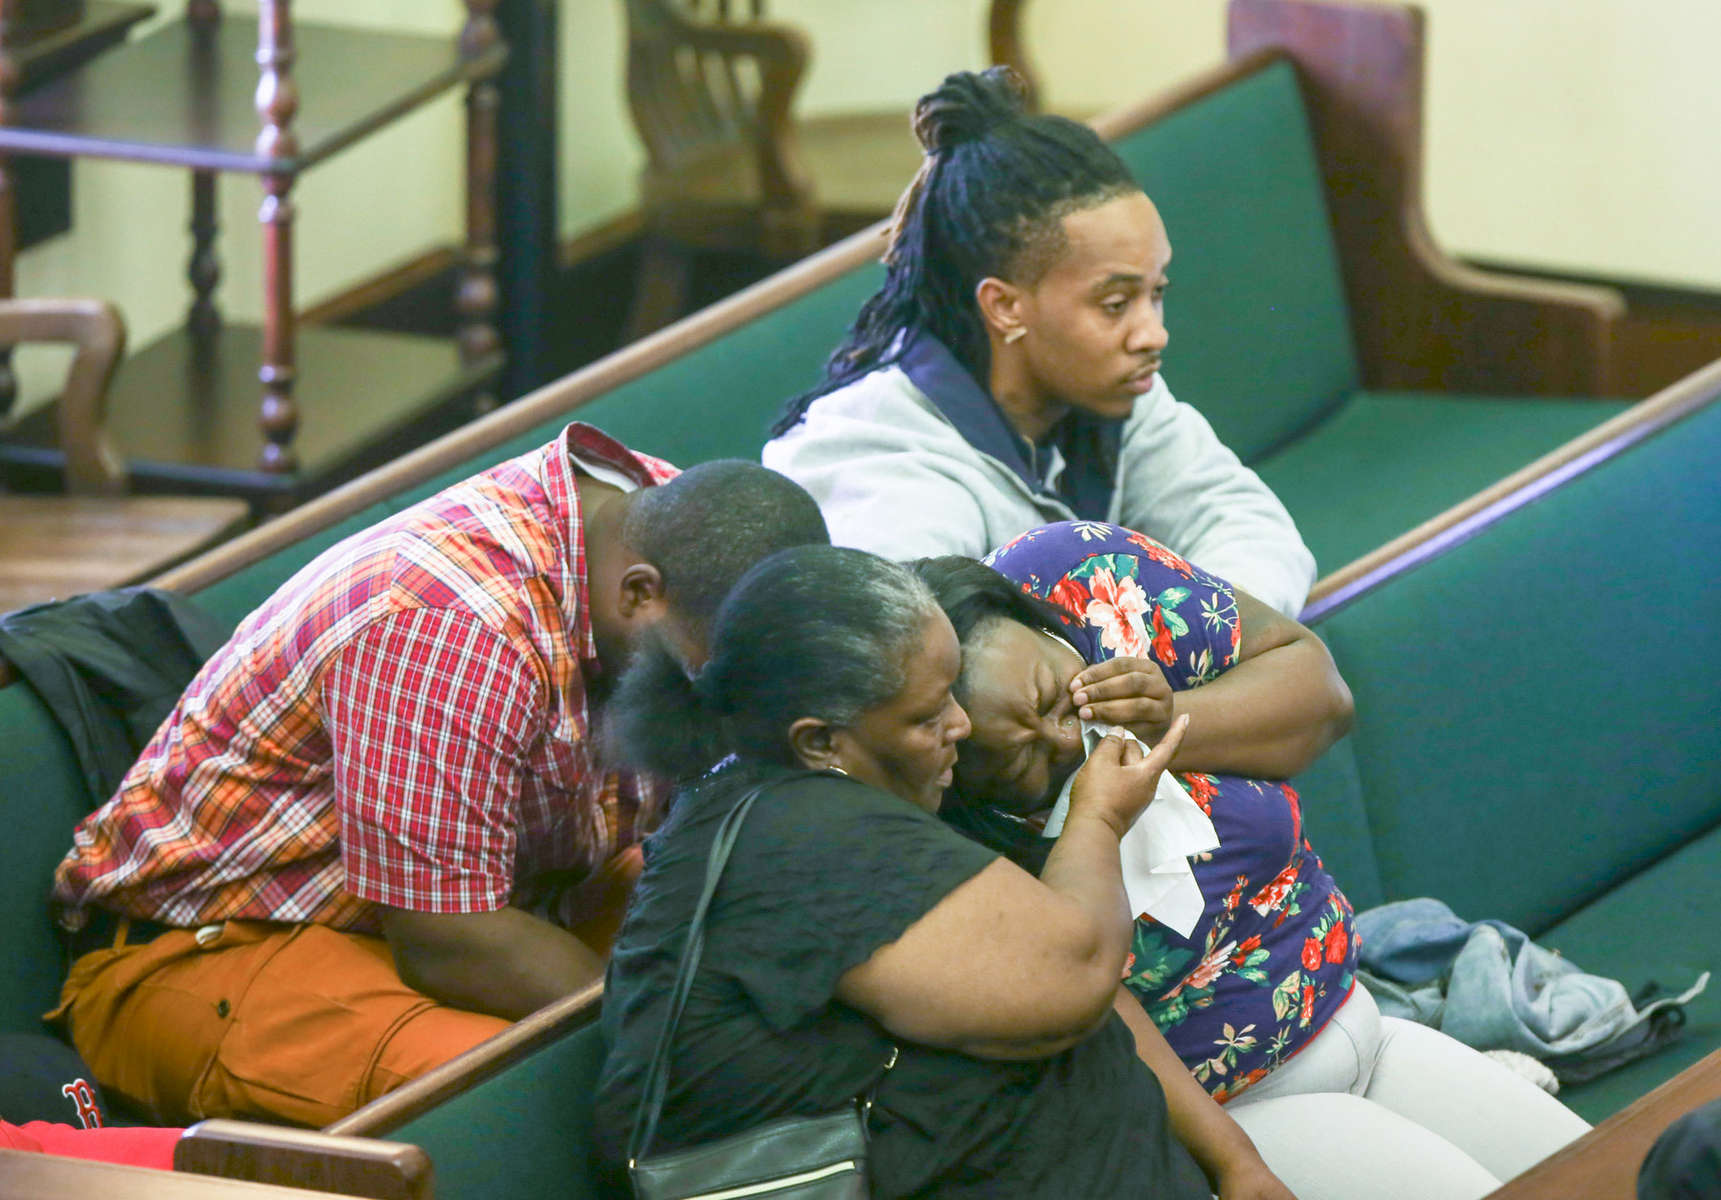 First Place | General NewsAileen Devlin, The Daily ReflectorJudges comments: Again, not deep in terms of number of entries but hard to place the top three. Strong graphic images with news content prevailed.Family members and friends of Anthony Antonio Johnson get emotional during the trial of Jahrheel Ikle May, 19, who is charged with murder in the death of Johnson, who was shot to death on January 2013 held at the Pitt County Courthouse on July 14, 2015.